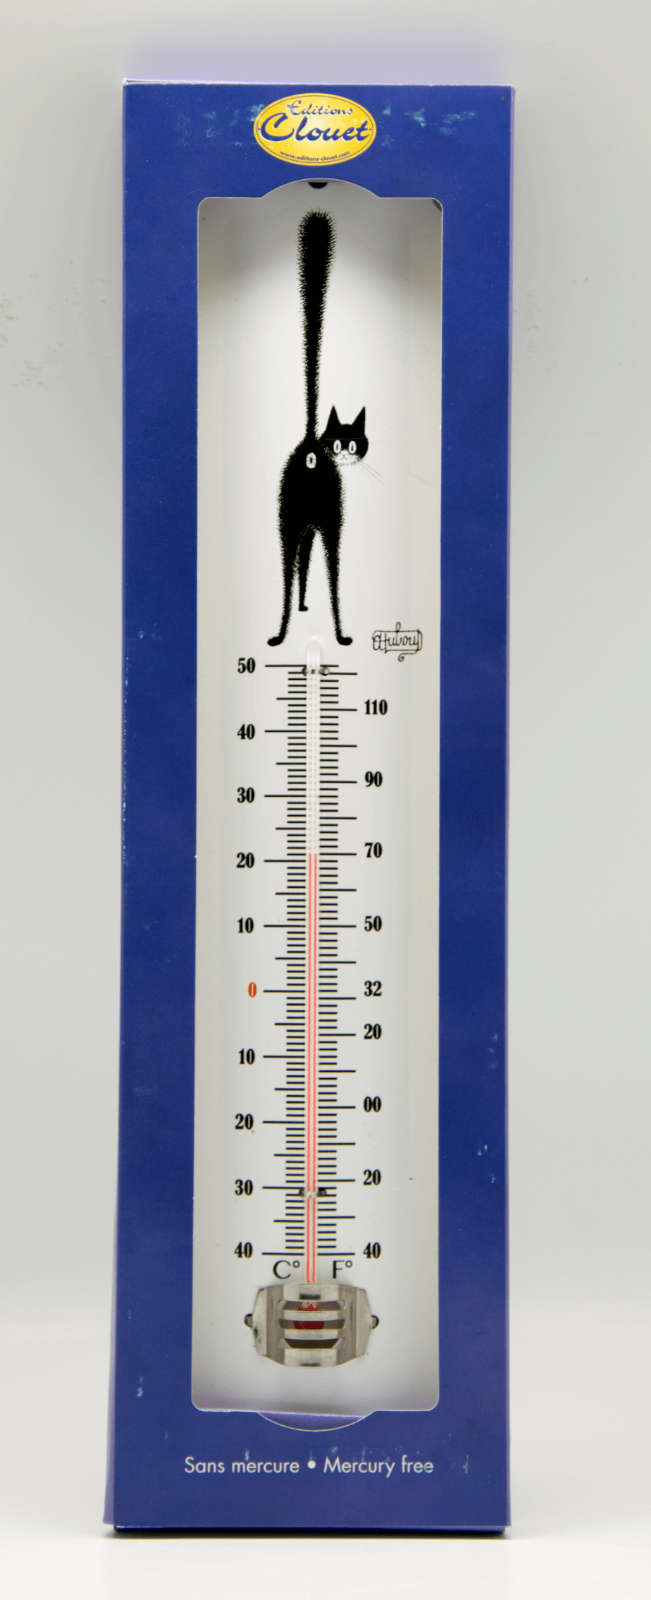 Dubout Cats - The Third Eye Garden Indoor Thermometer (3ieme Oeil) Vintage Retro